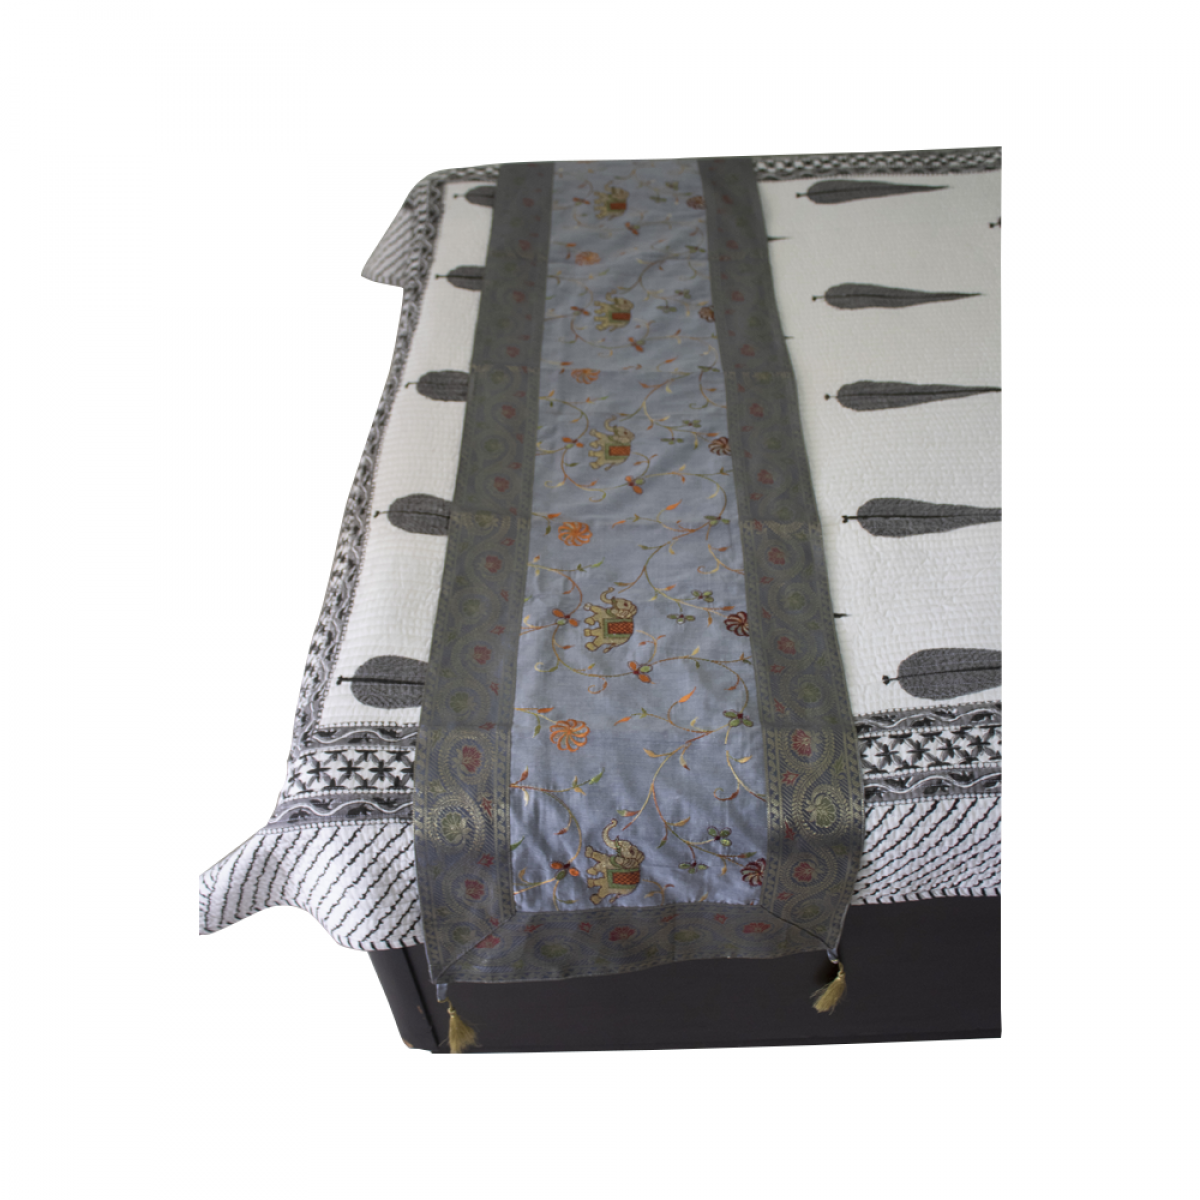 Embroidered Table Bed Runner Gray